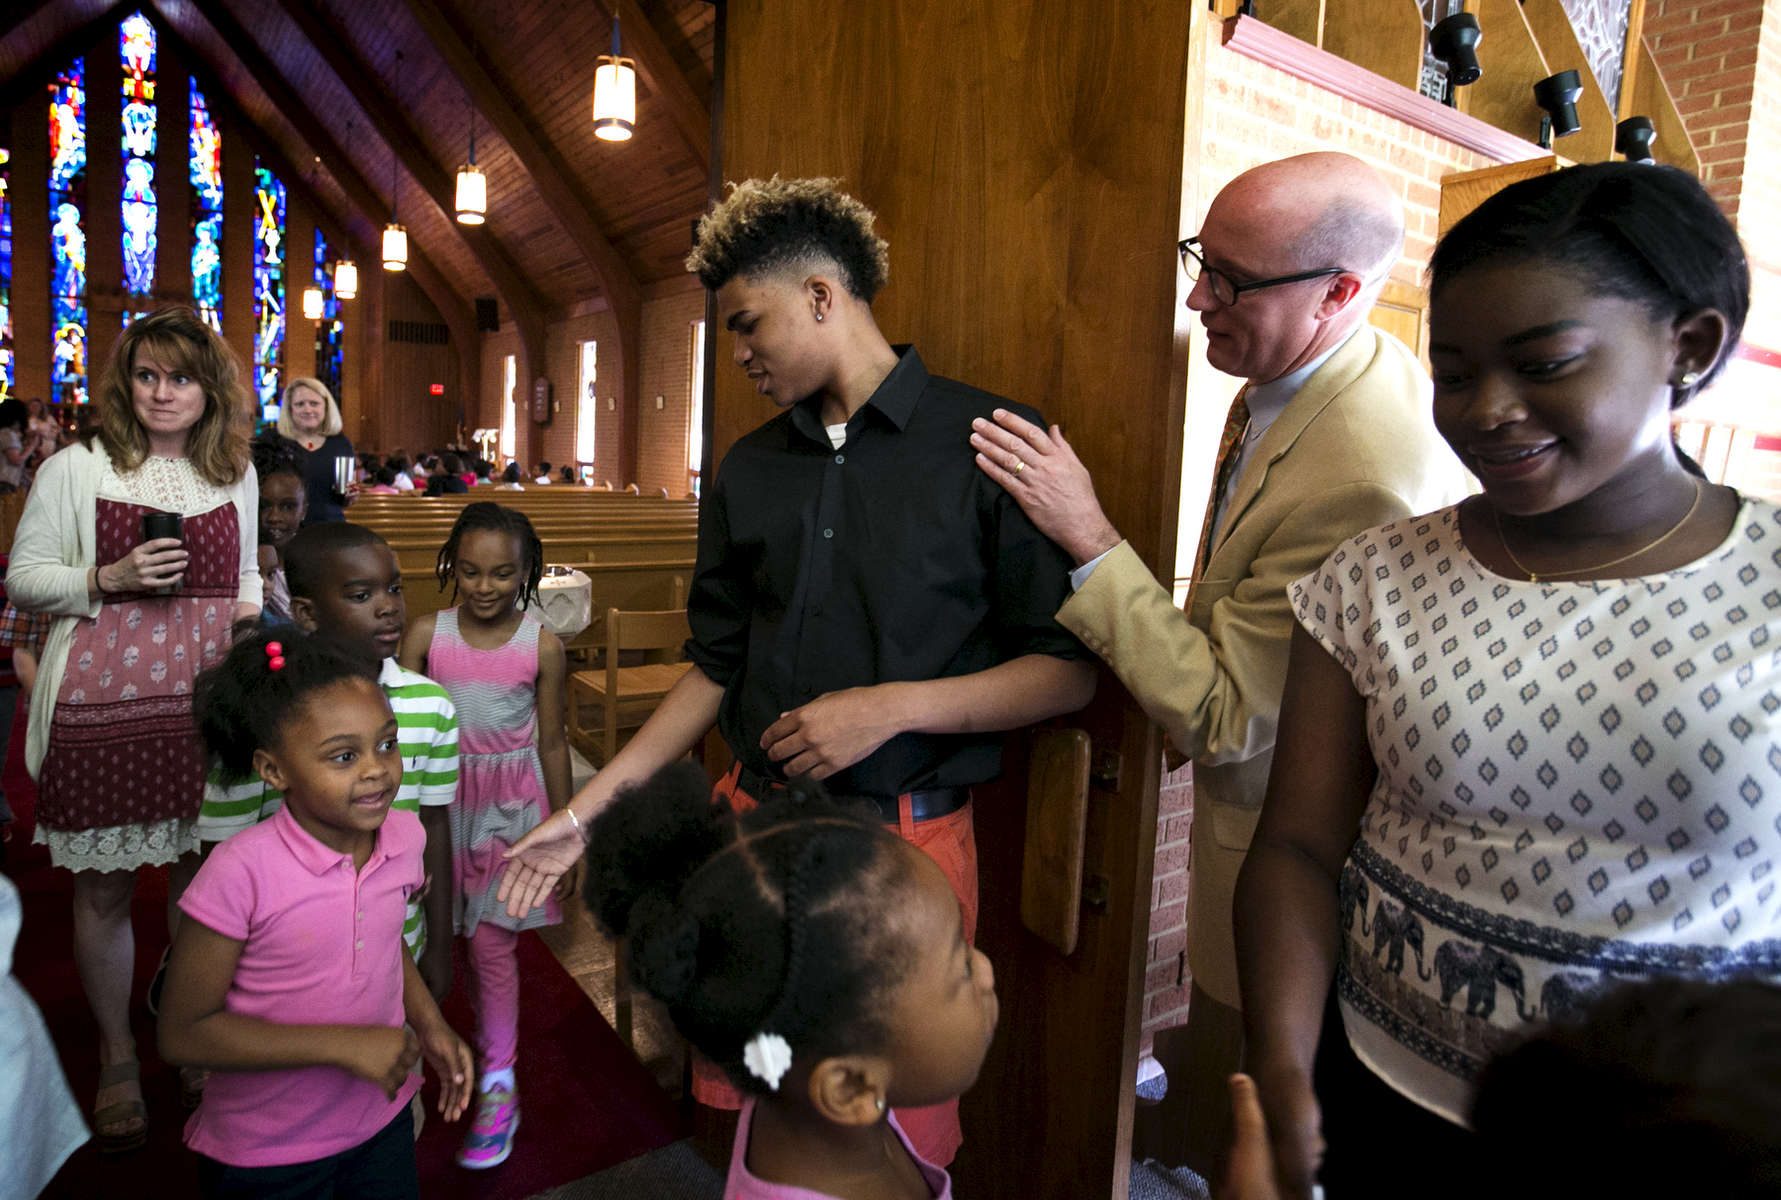 May 23, 2016 - St. George's head of school J. Ross Peters taps Zearius Jenkins on the shoulder as Jenkins and Erica Stevenson shake hands with young students following a chapel service at the Memphis campus the day after graduation. {quote}The real work is beginning.{quote} Peters said. {quote}This is the moment when we grow in our full selves. This is the model coming to its first fruition.{quote} Jenkins, Stevenson and a handful of others were among the first students to ever walk the halls at the Memphis campus and are members of the first graduating class under the three-campus model the school began more than a decade ago. (Mike Brown/The Commercial Appeal)